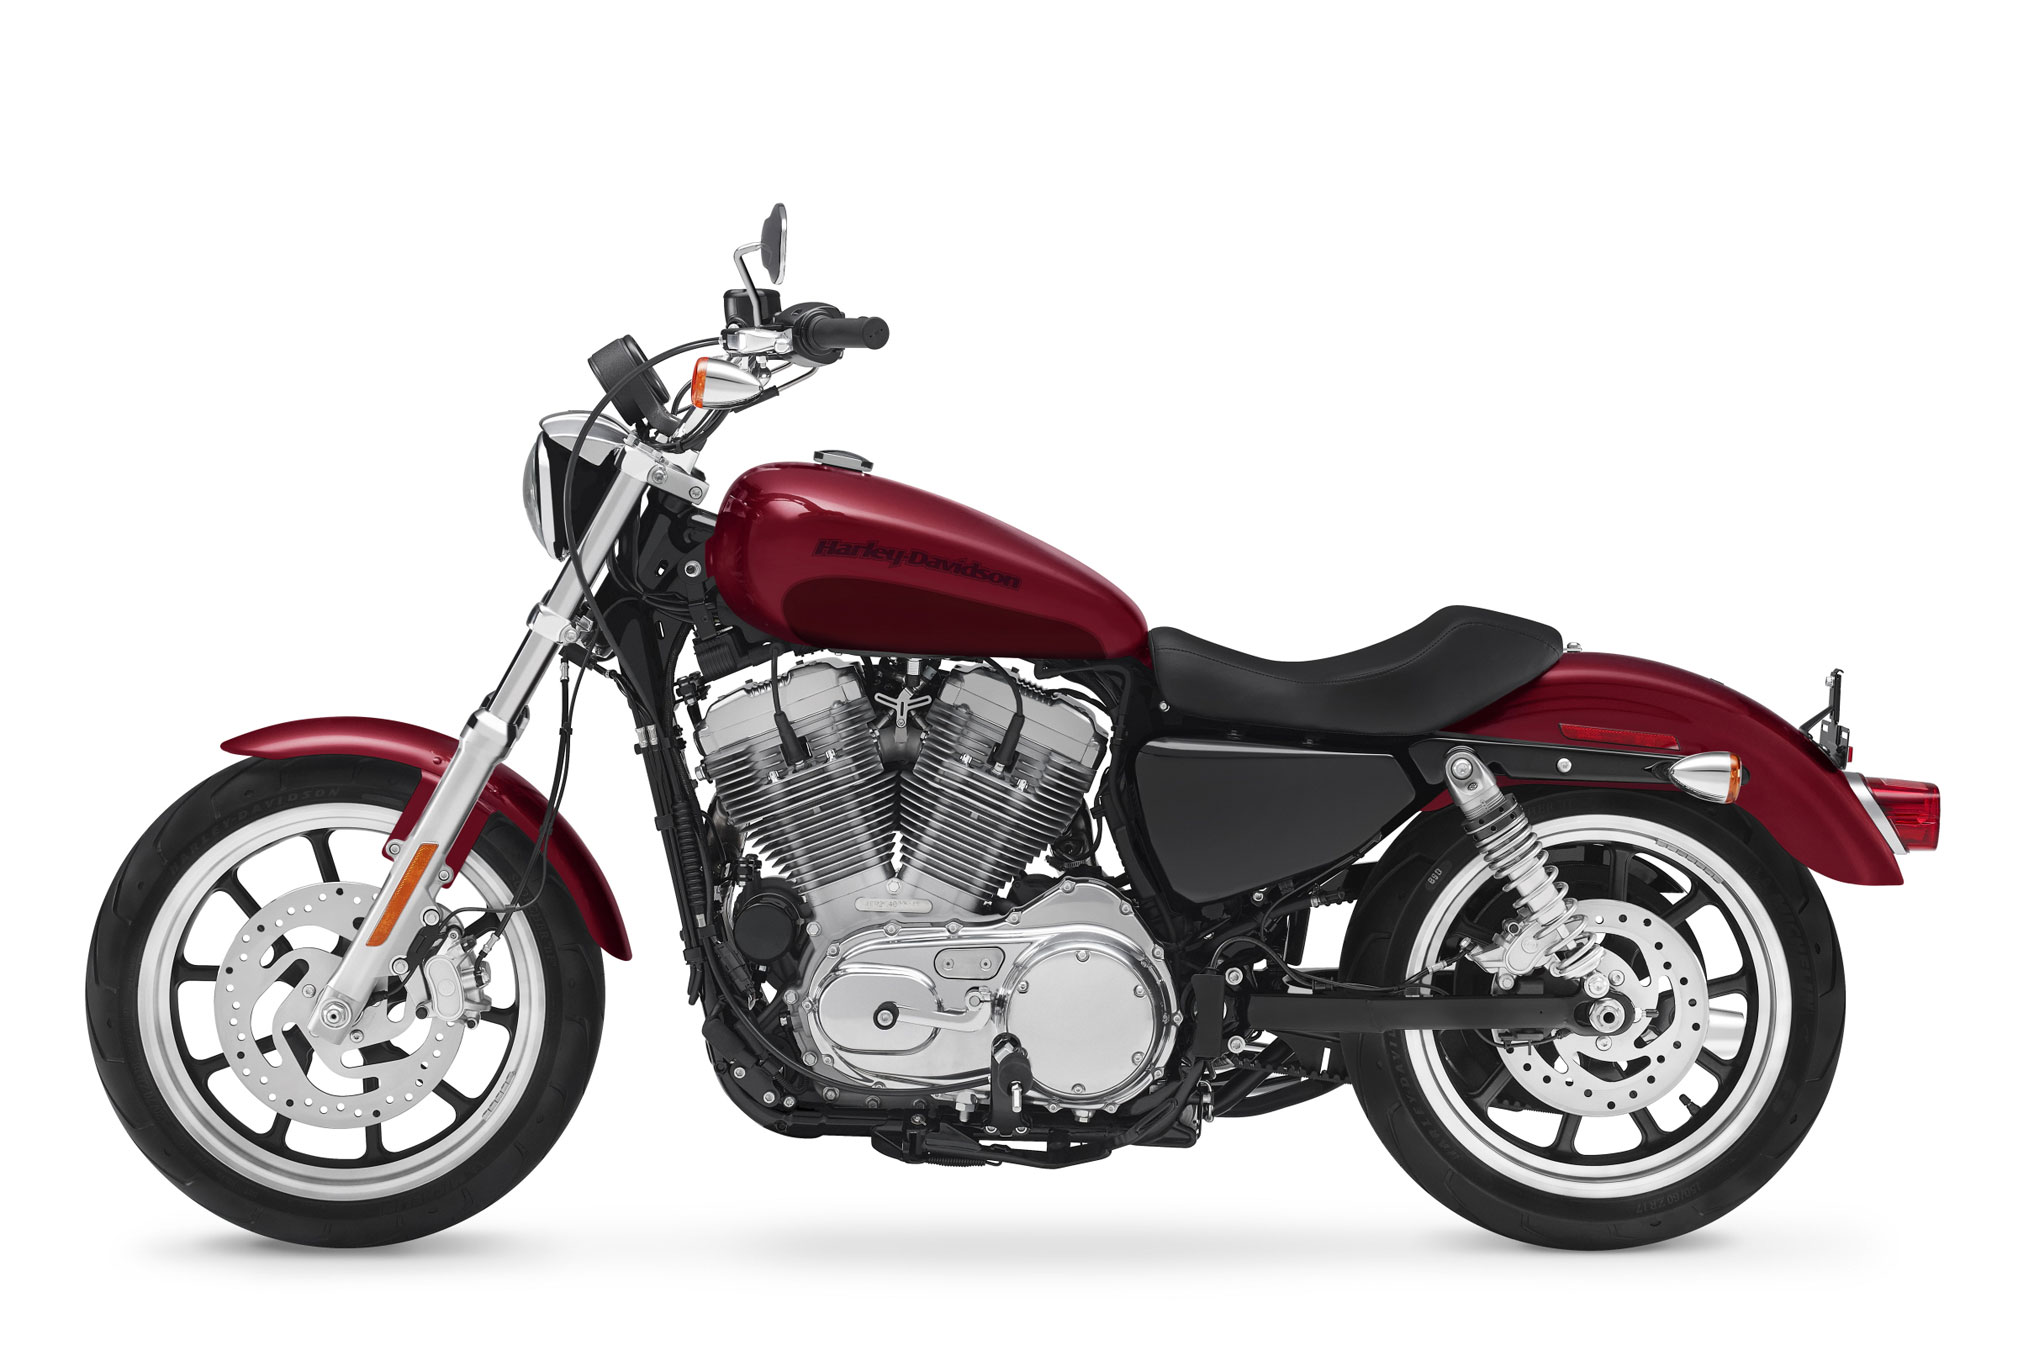 2018 Harley-Davidson SuperLow Review | TotalMotorcycle